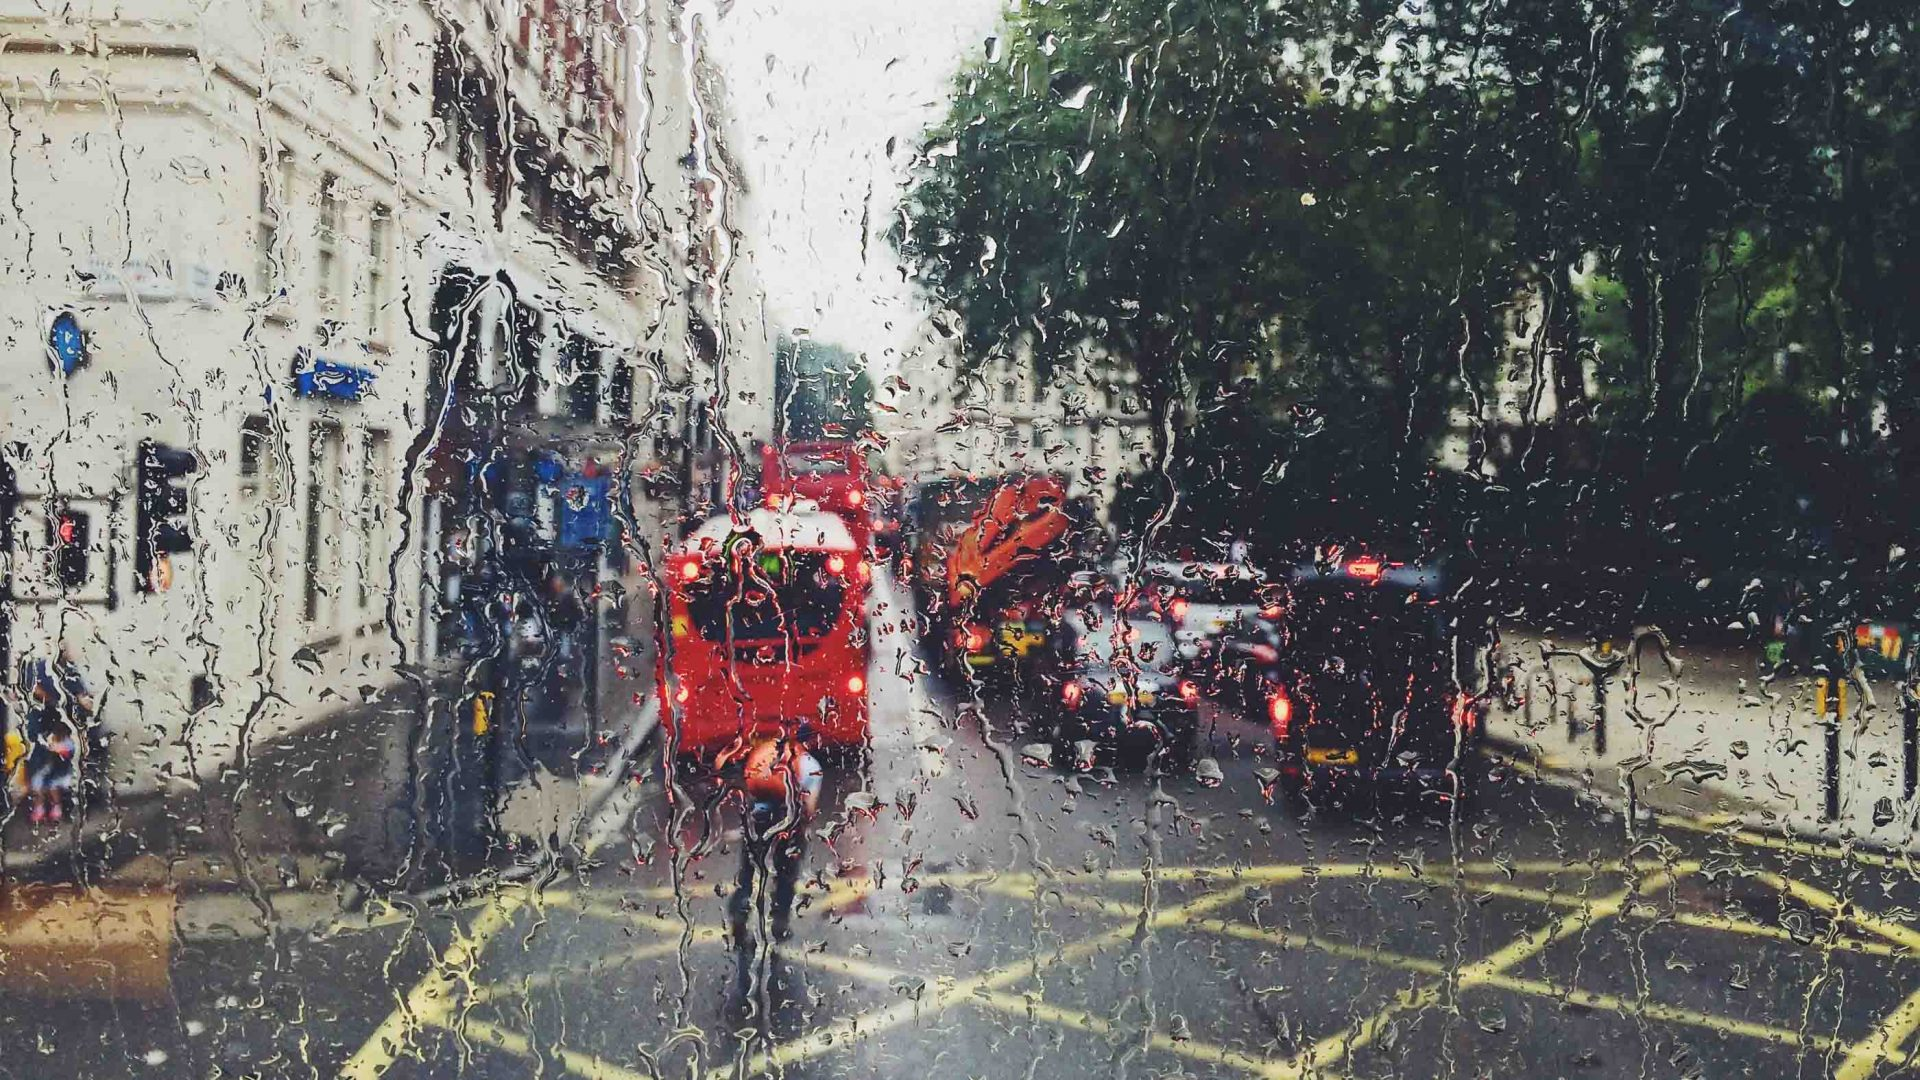 You can keep your sunshine: Traveling in the rain is better for the soul